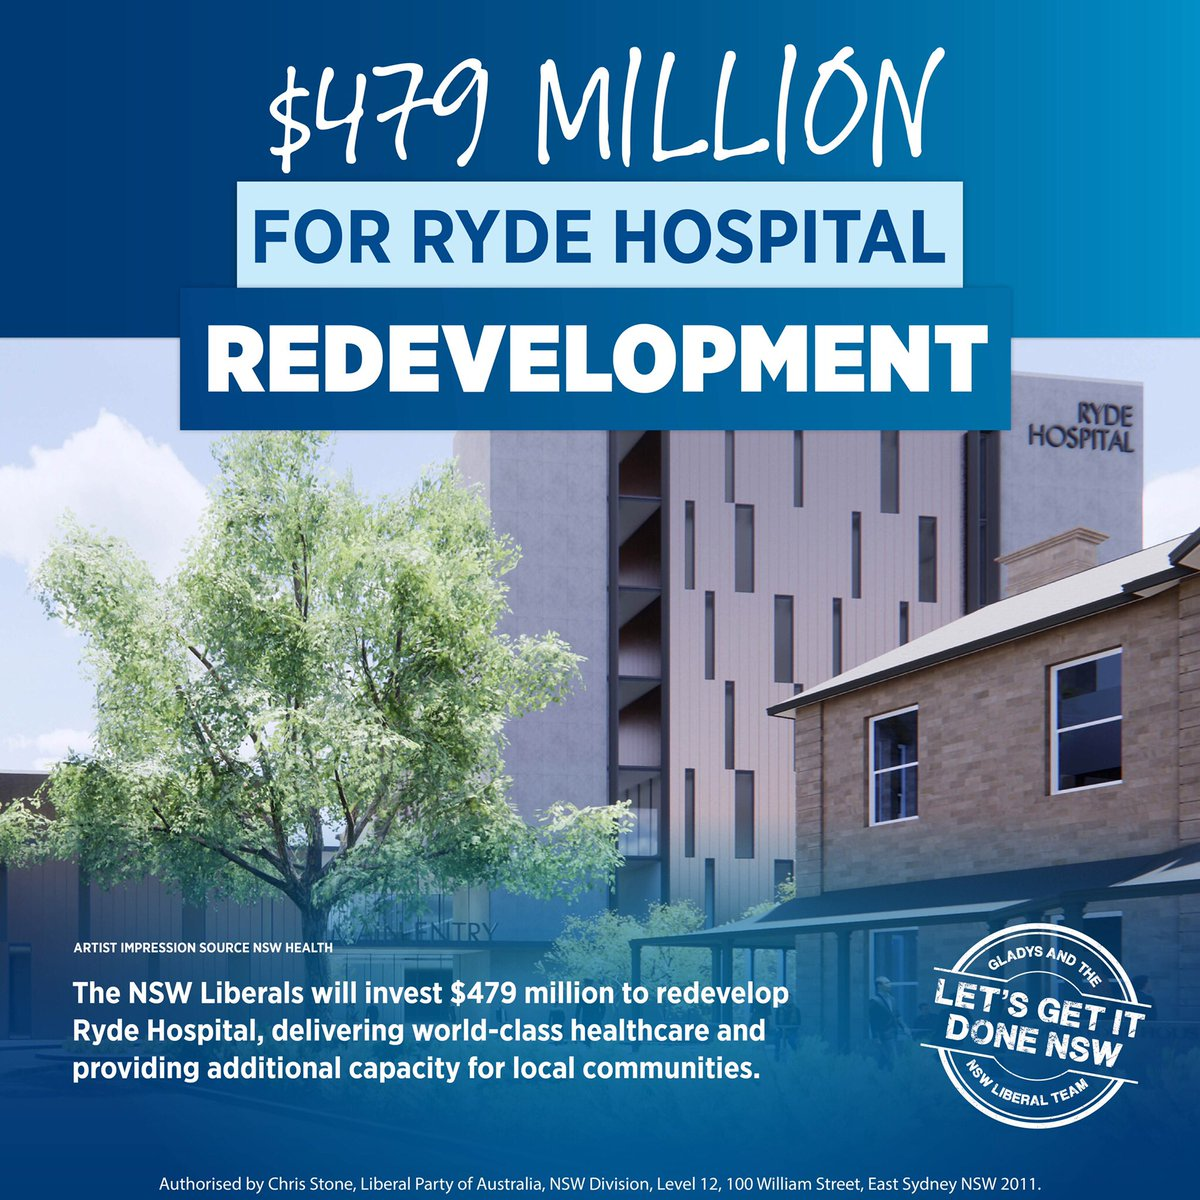 The NSW Liberals will invest $479 million to redevelop Ryde Hospital, delivering world-class healthcare and providing additional capacity for local communities. #nswpol #LetsGetItDoneNSW